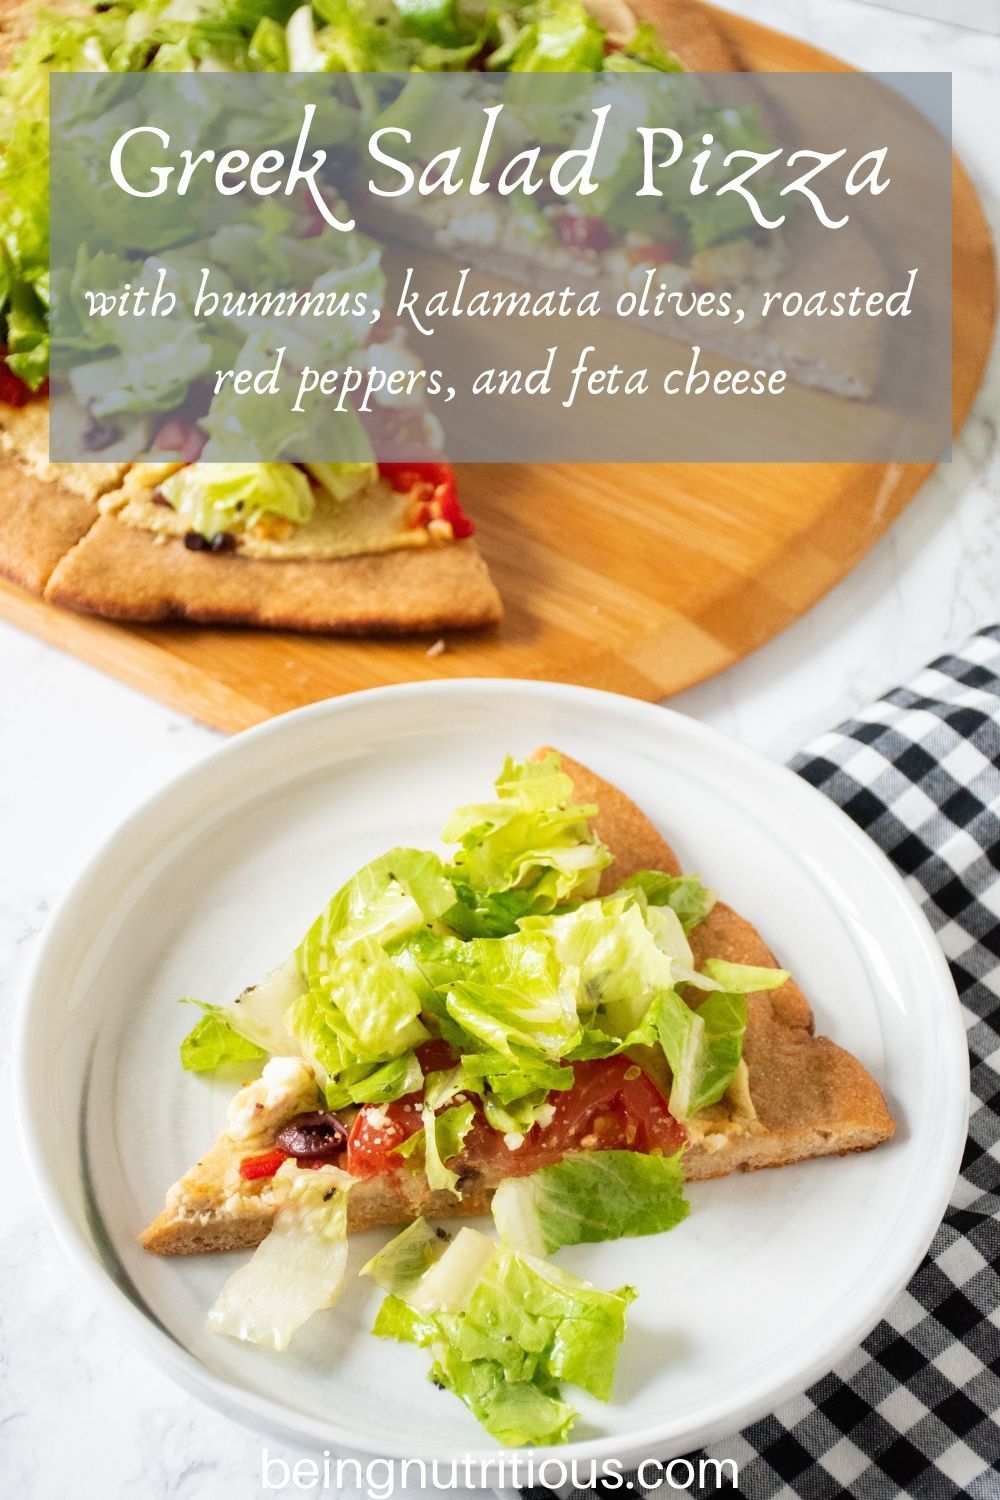 Slice of pizza on a plate. In background is the rest of the pizza on a peel, with whole wheat crust, topped with salad. Text overlay: Greek Salad Pizza with hummus, kalamata olives, roasted red peppers, and feta cheese.